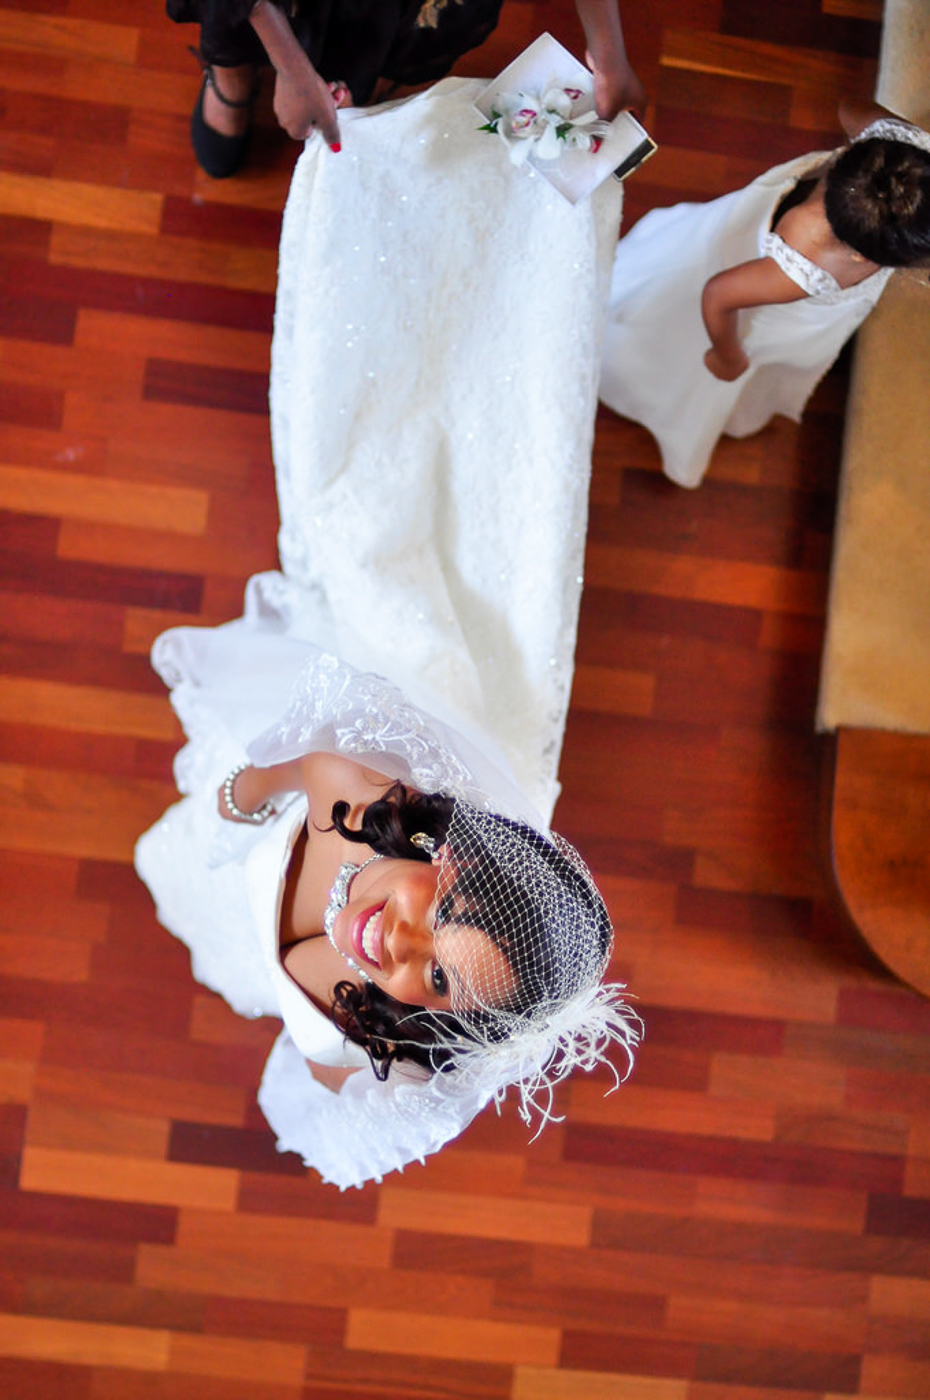 Beautiful bride looking up for photo before wedding ceremony